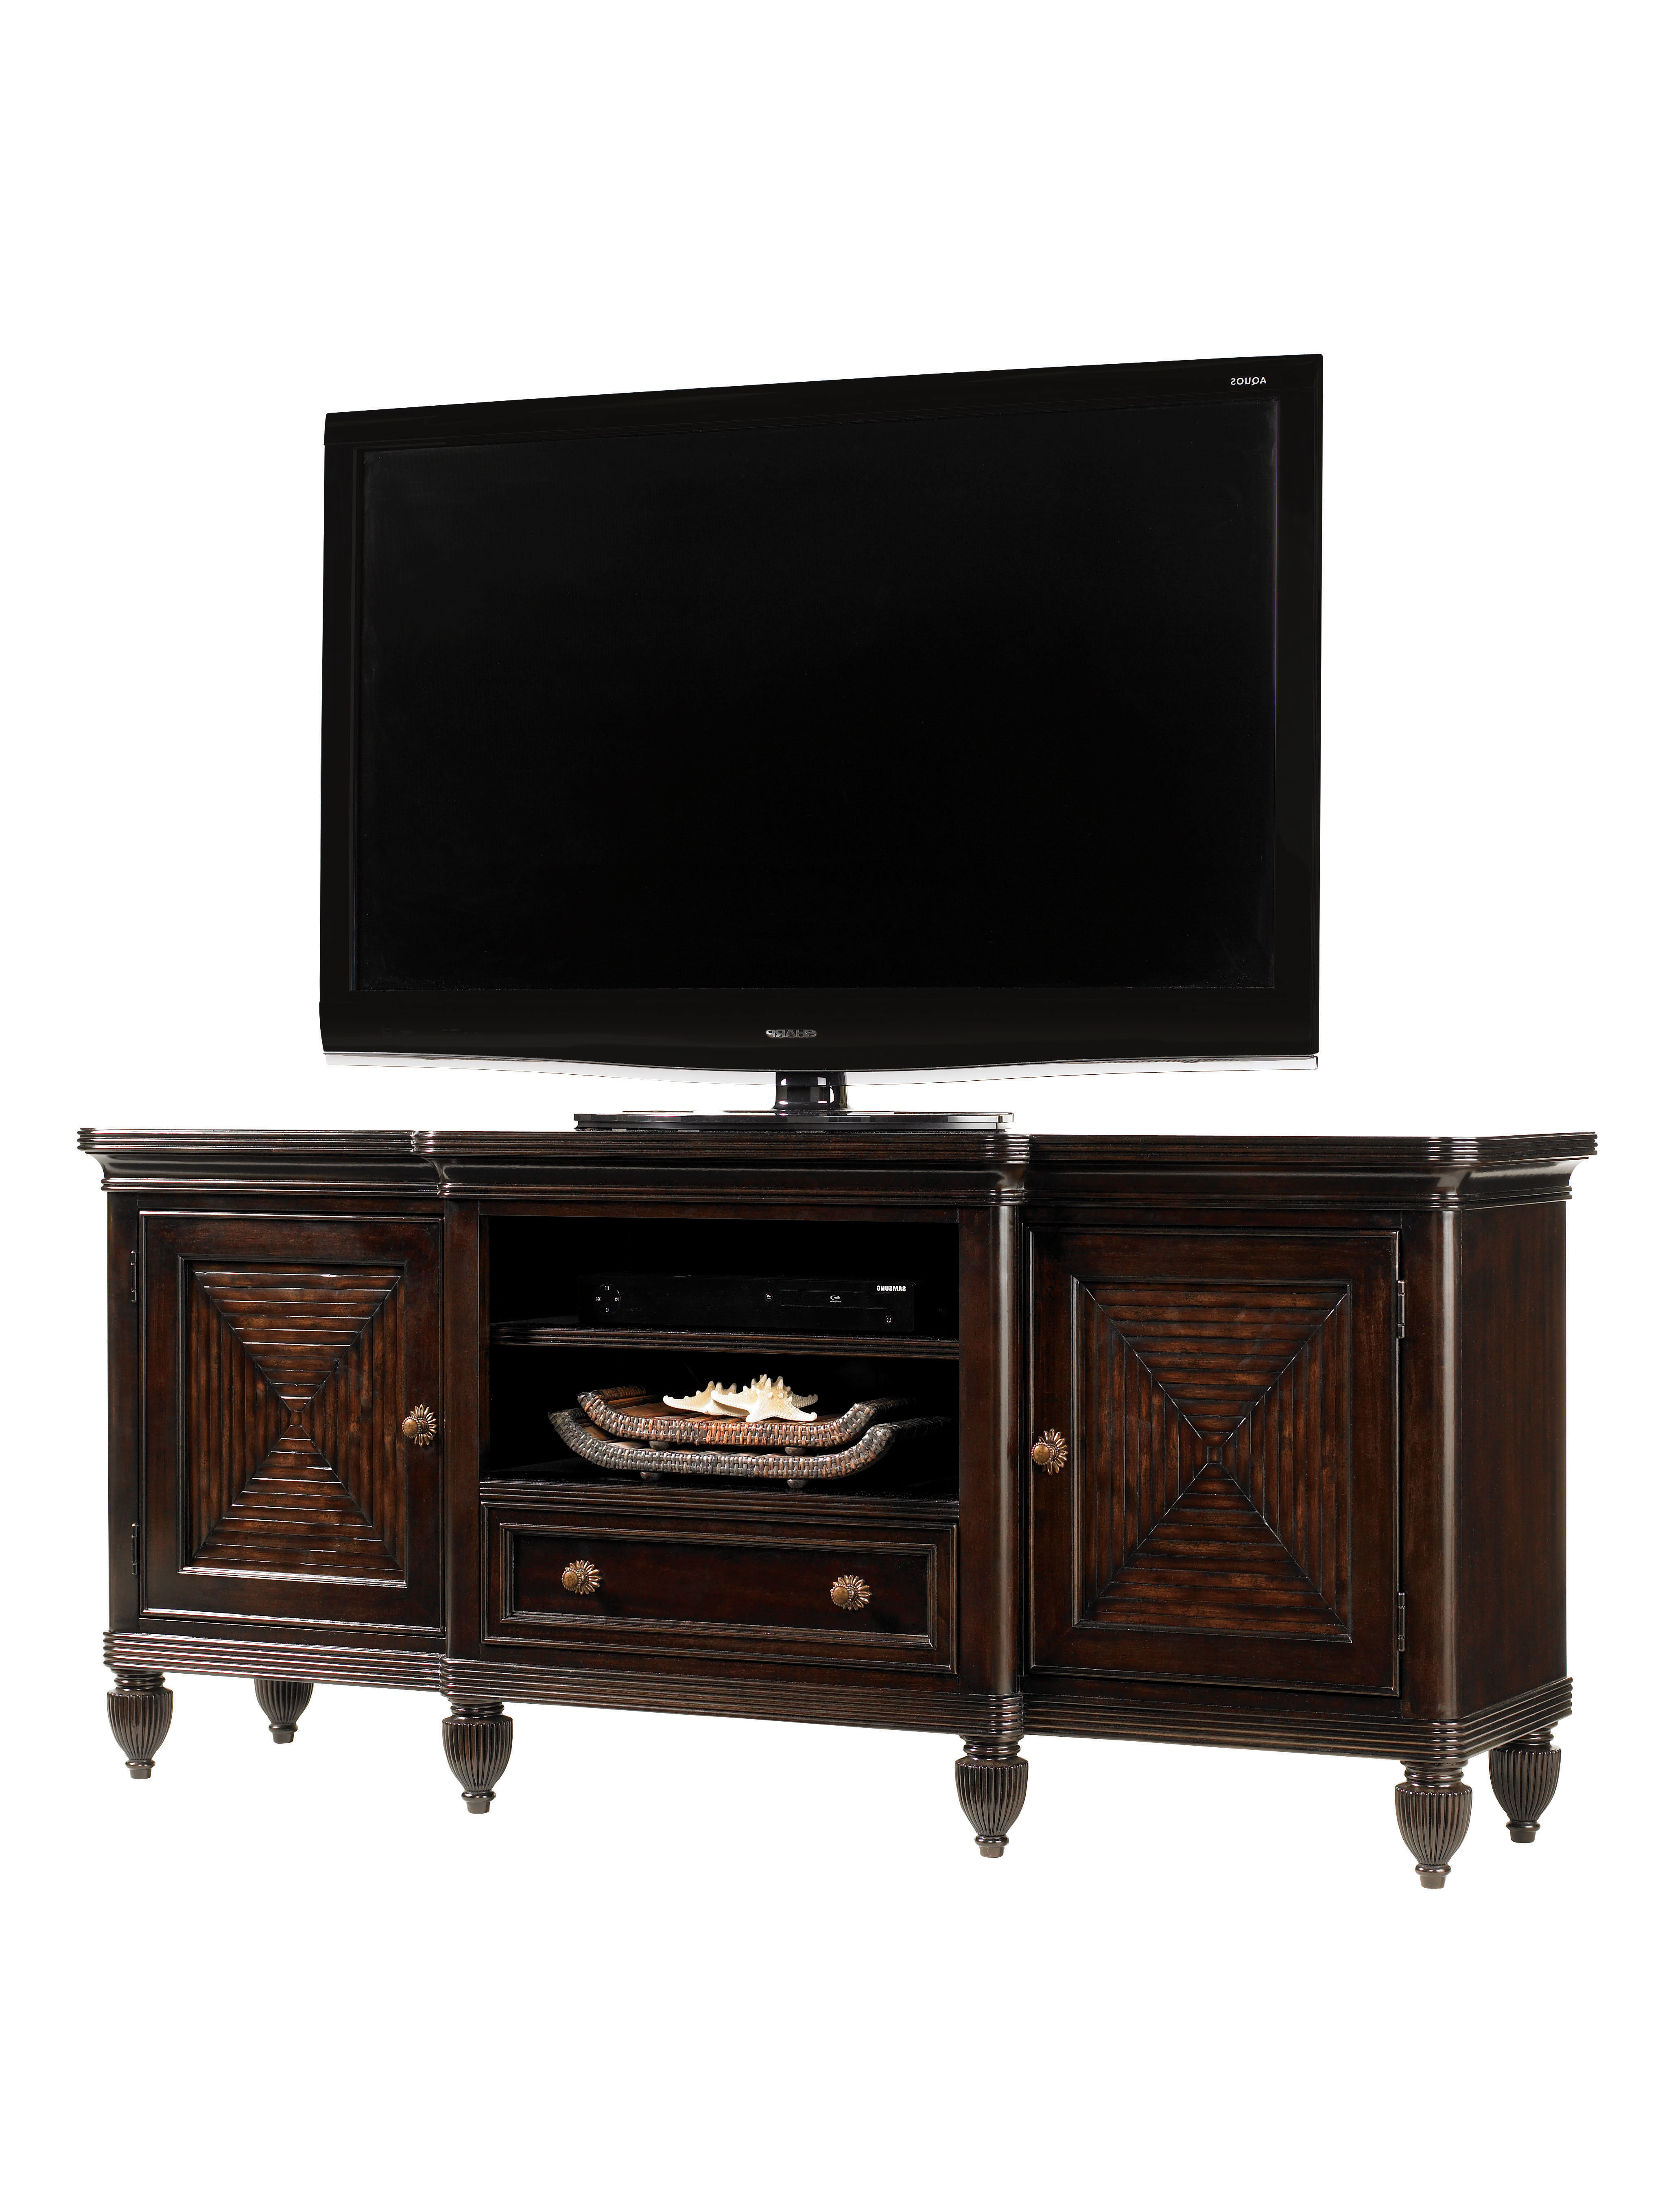 70 Inch Tv Stands | Joss & Main Throughout Bale 82 Inch Tv Stands (View 12 of 20)